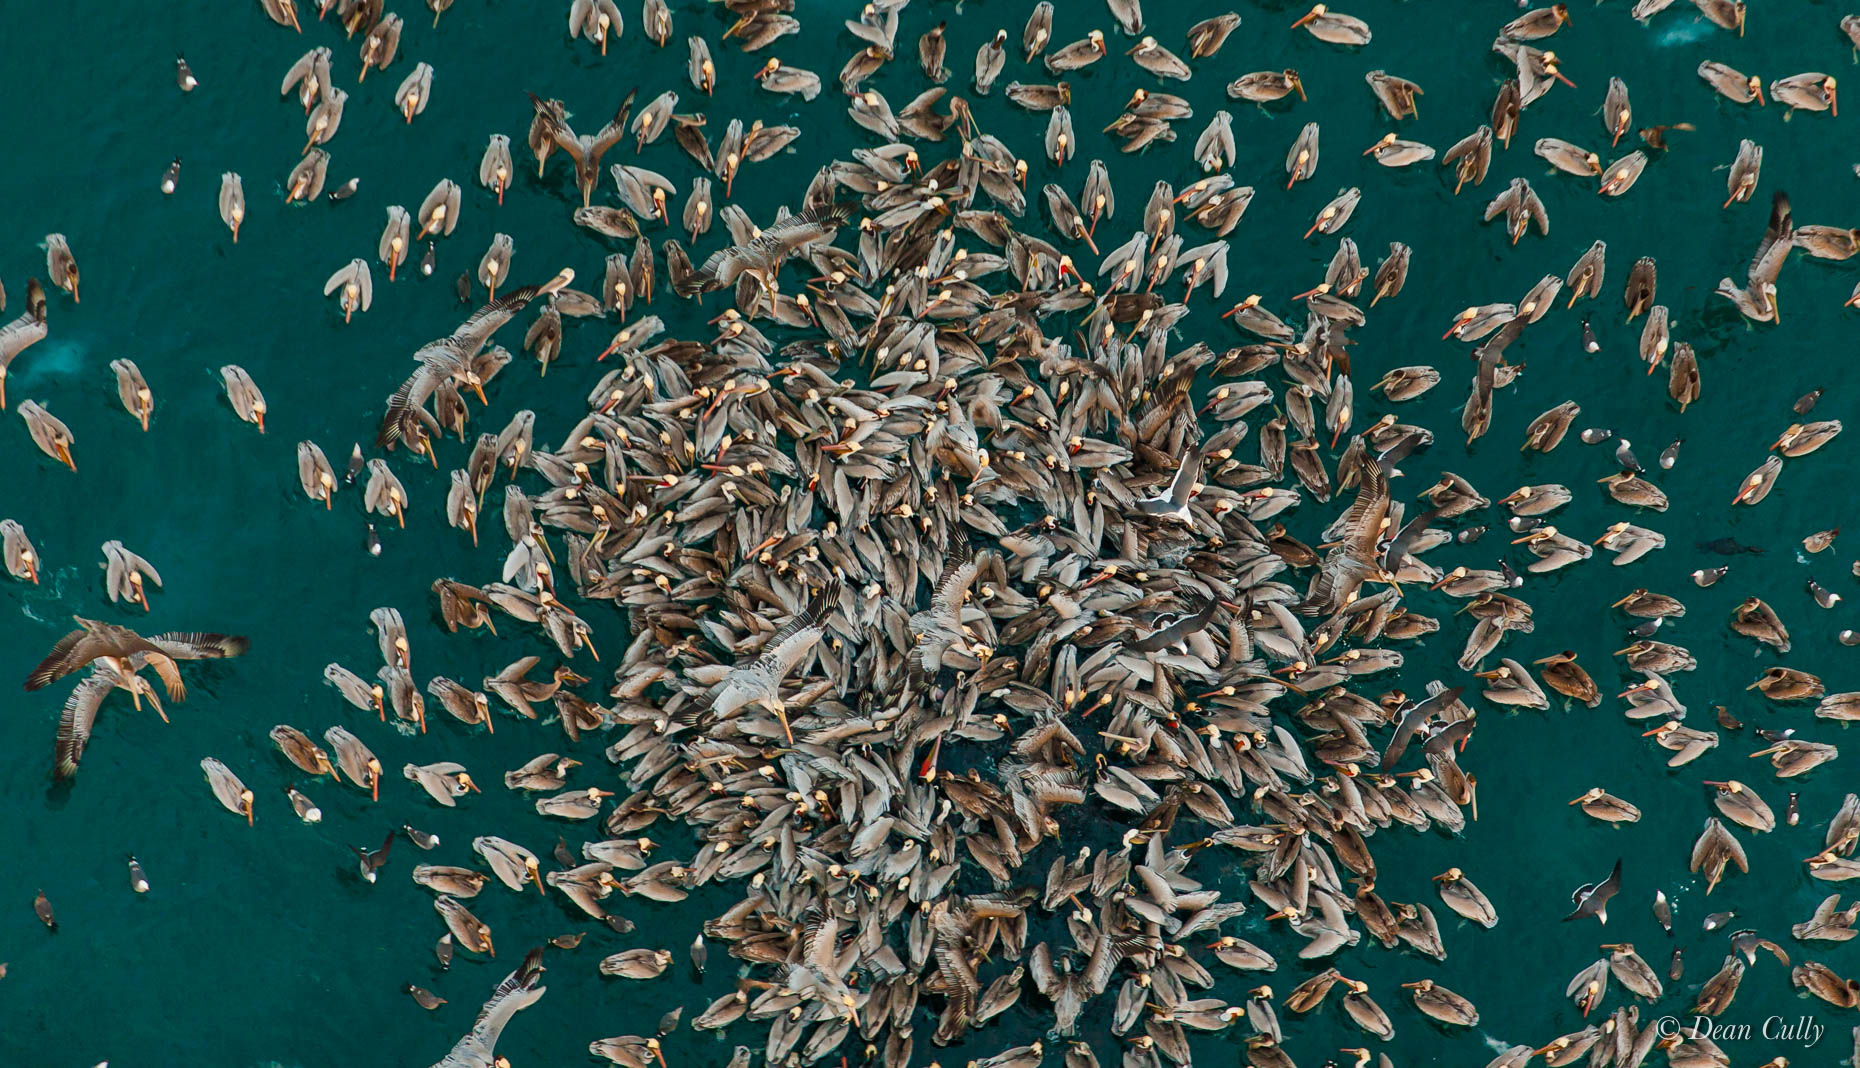 aerial_pelicans_feeding_frenzy_pacific_california_3260